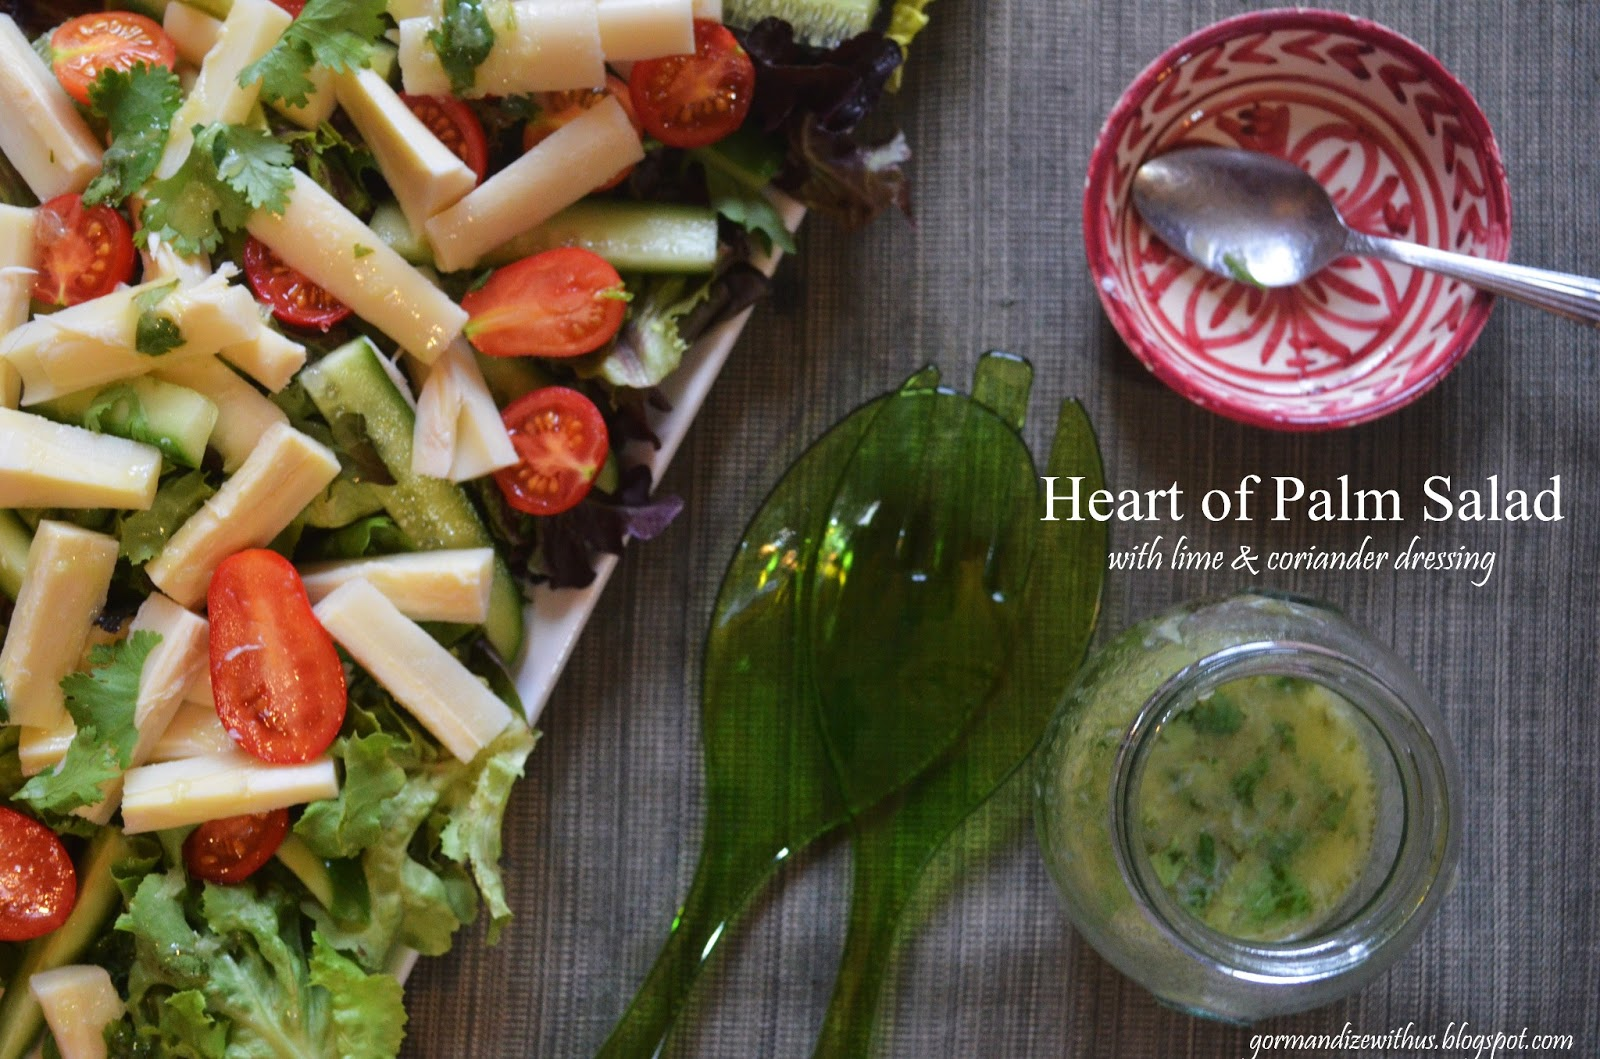 Gormandize: Hearts of Palm Salad with Lime Coriander Dressing